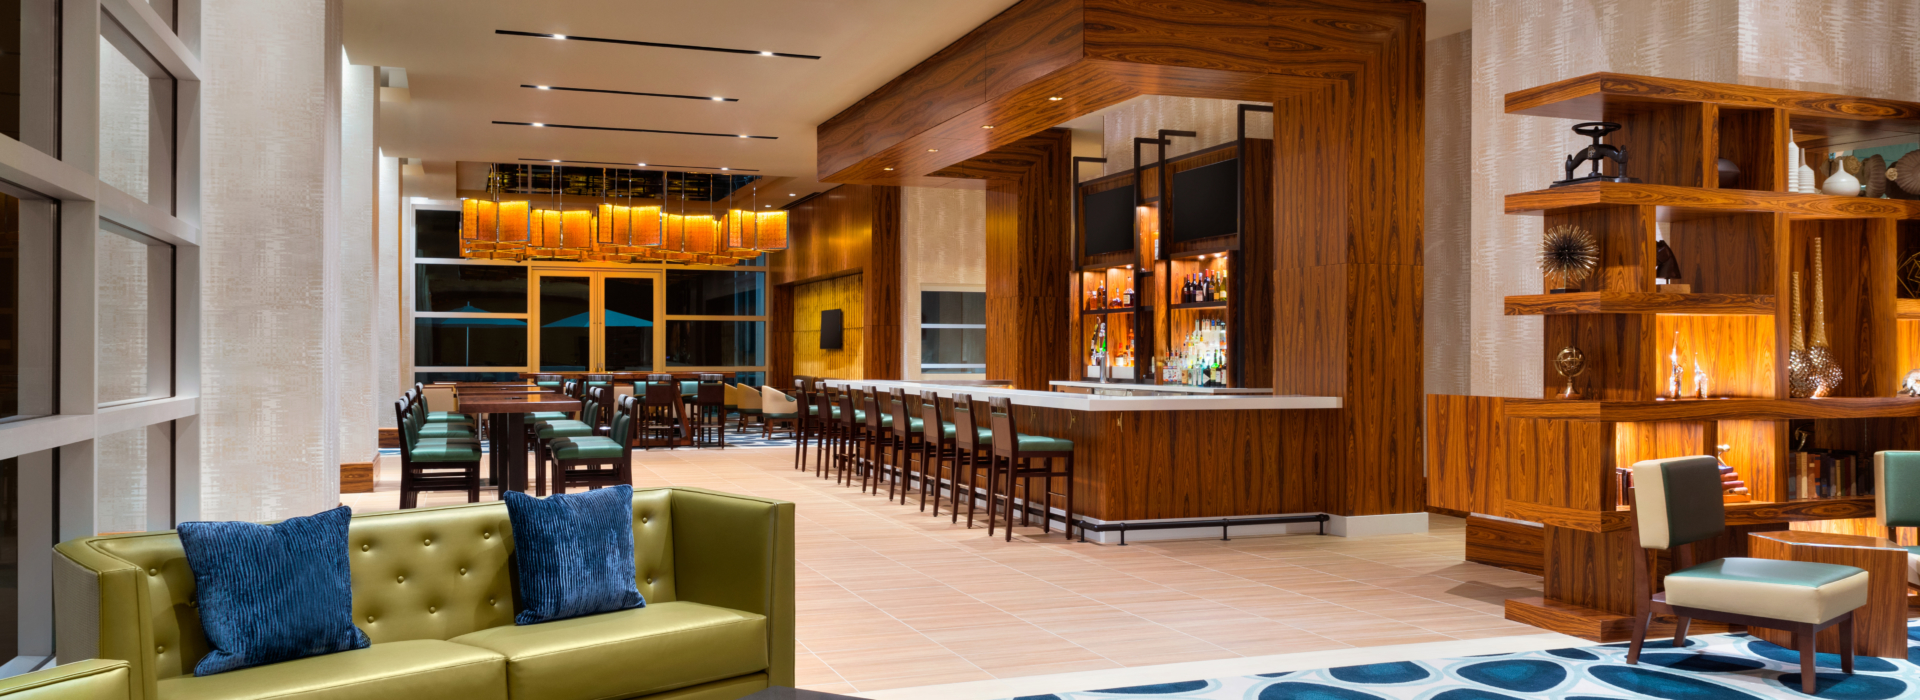 Rush Street Hospitality was created to fulfill the promise of a true destination casino.